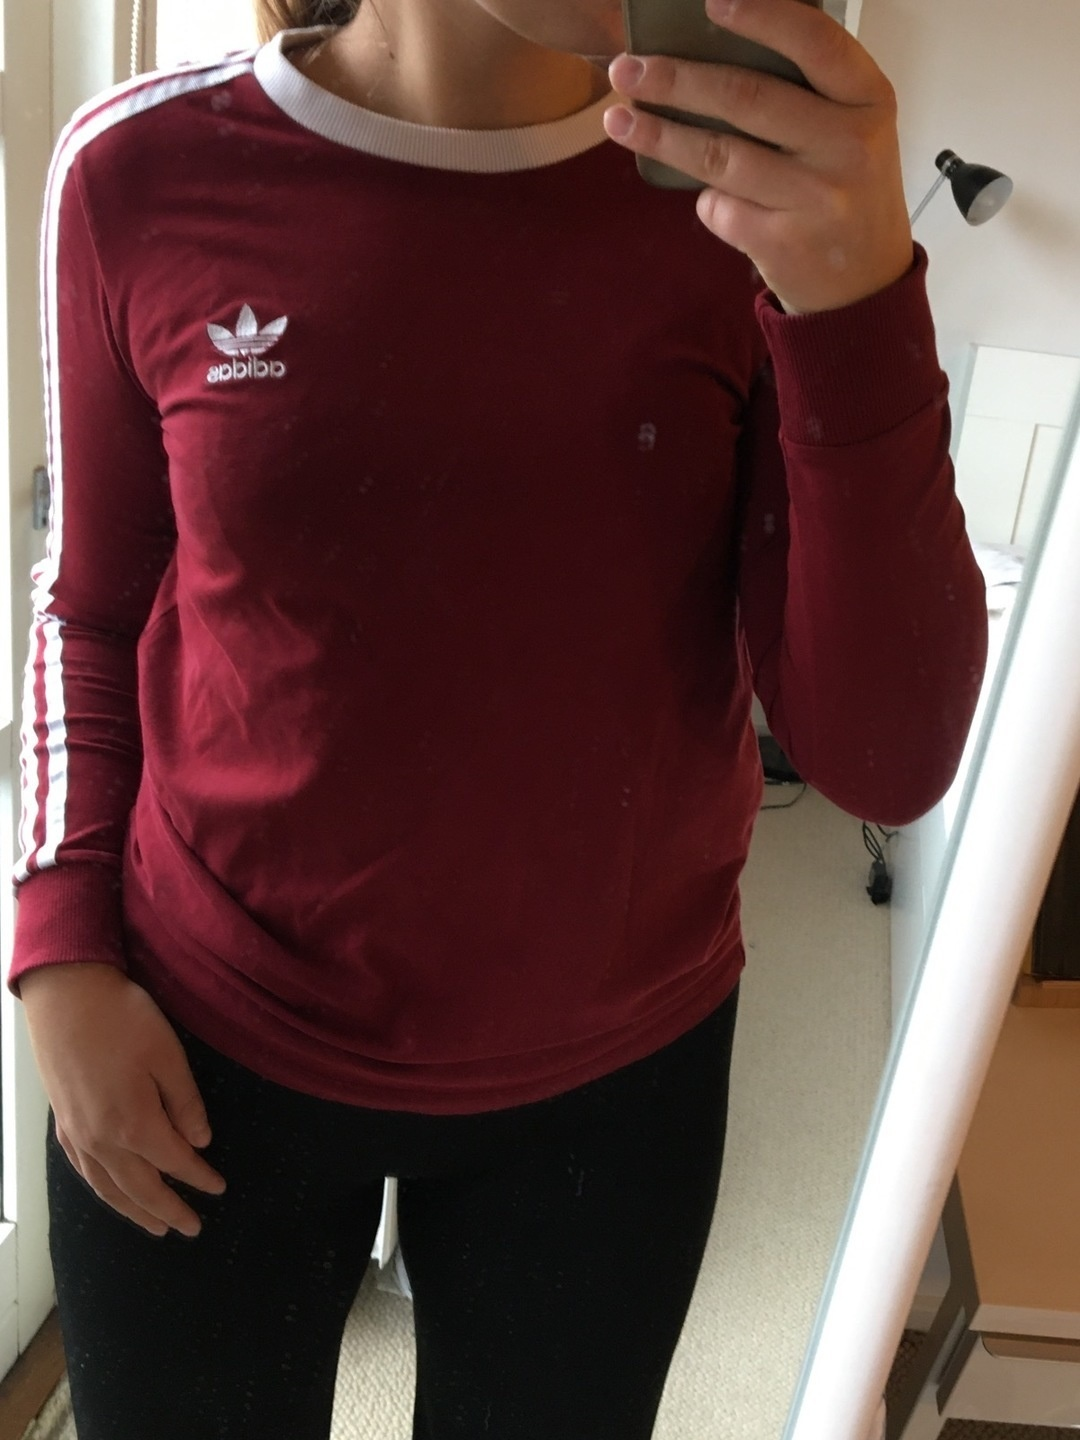 Women's jumpers & cardigans - ADIDAS photo 2